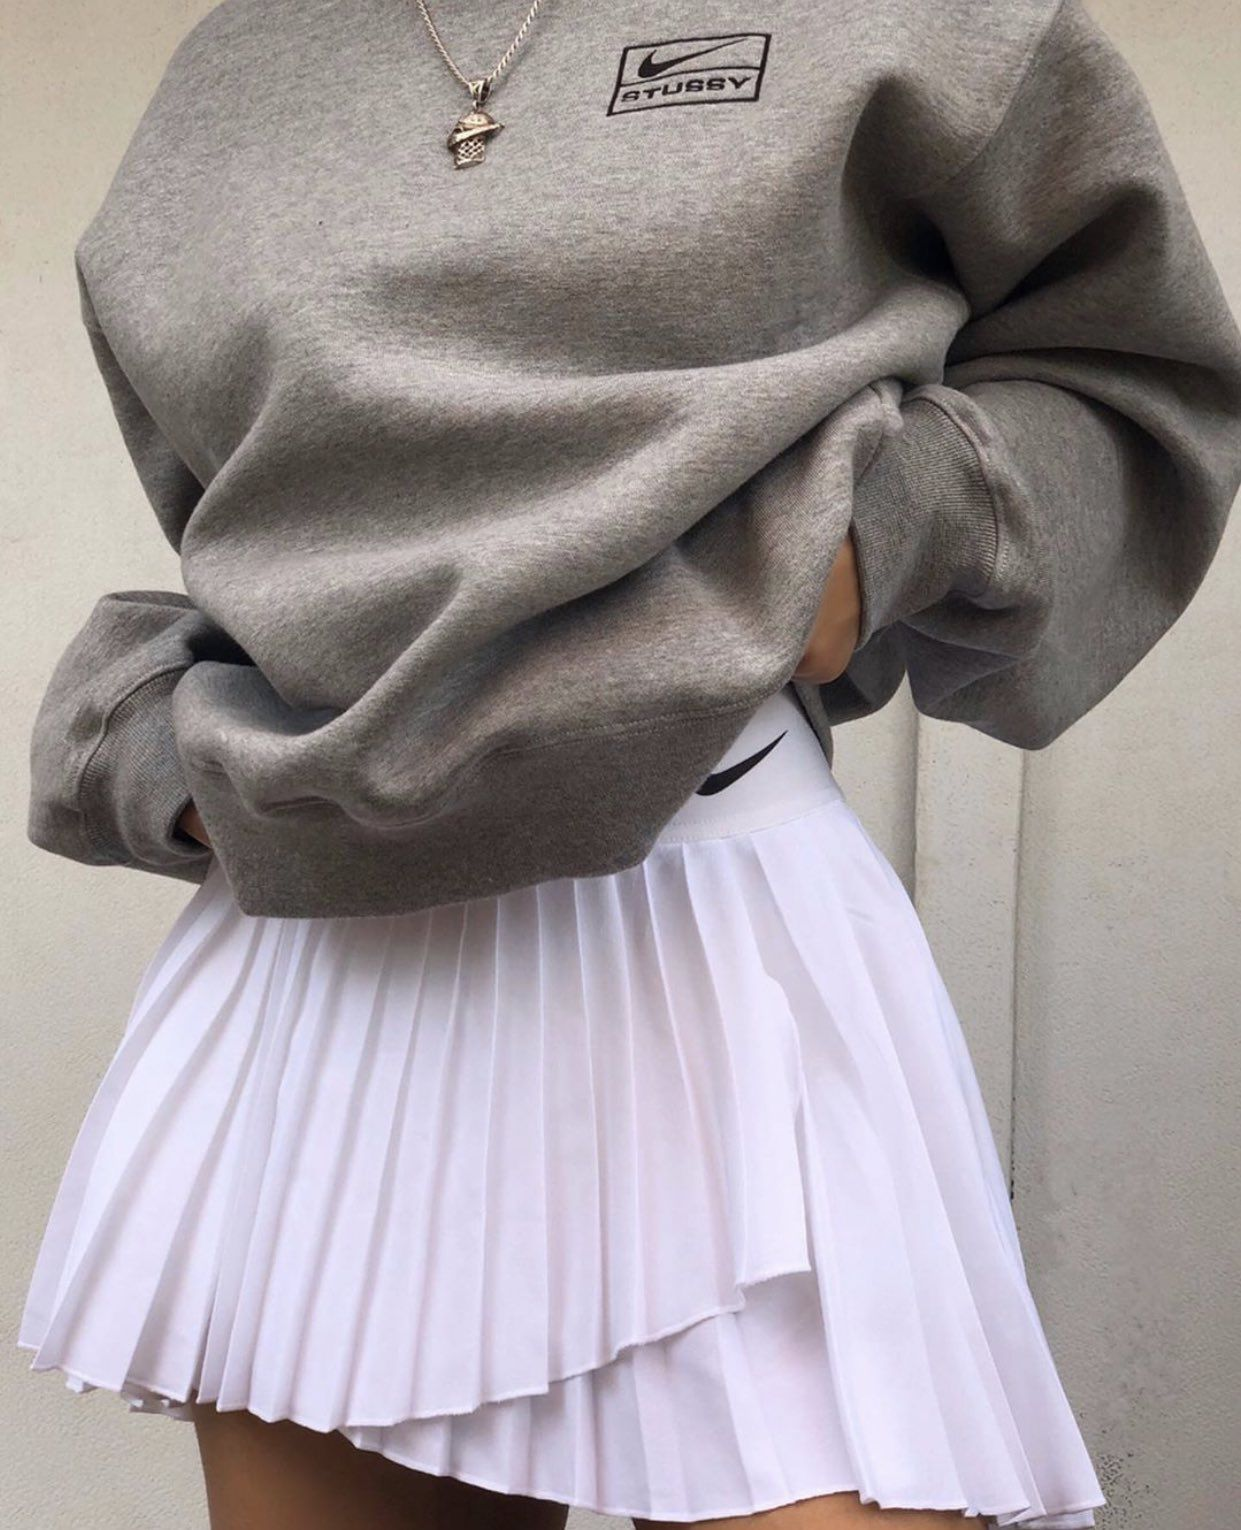 Tenis Skirt In 2020 Tennis Skirt Outfit Fashion Inspo Outfits Fashion